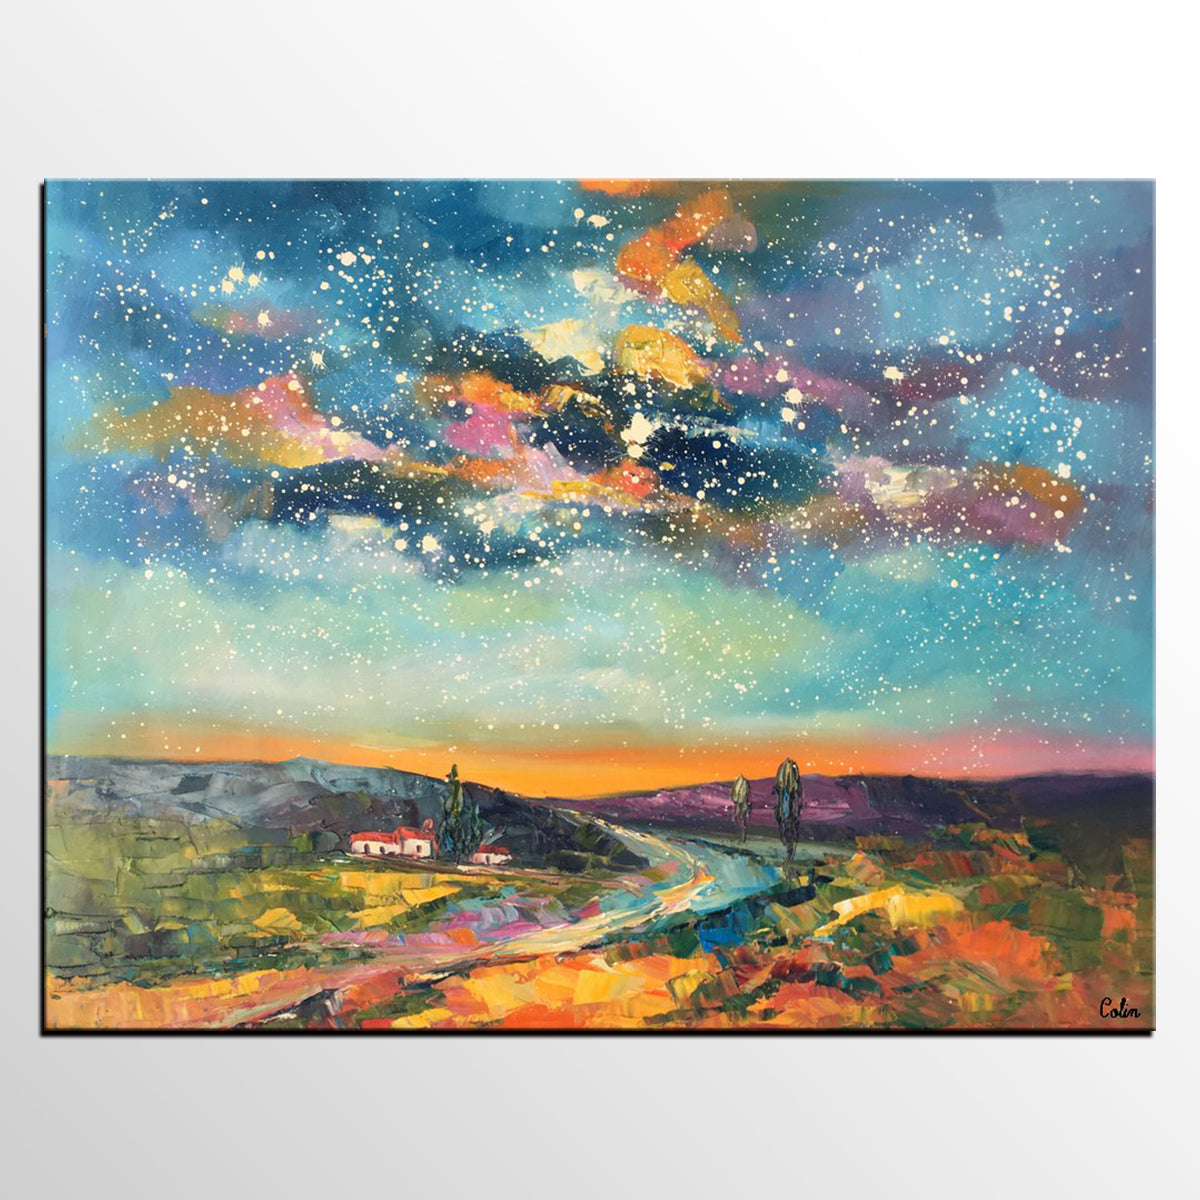 Canvas Wall Art, Abstract Landscape Art, Starry Night Sky, Bedroom Wall Art, Abstract Art Painting, Oil Painting